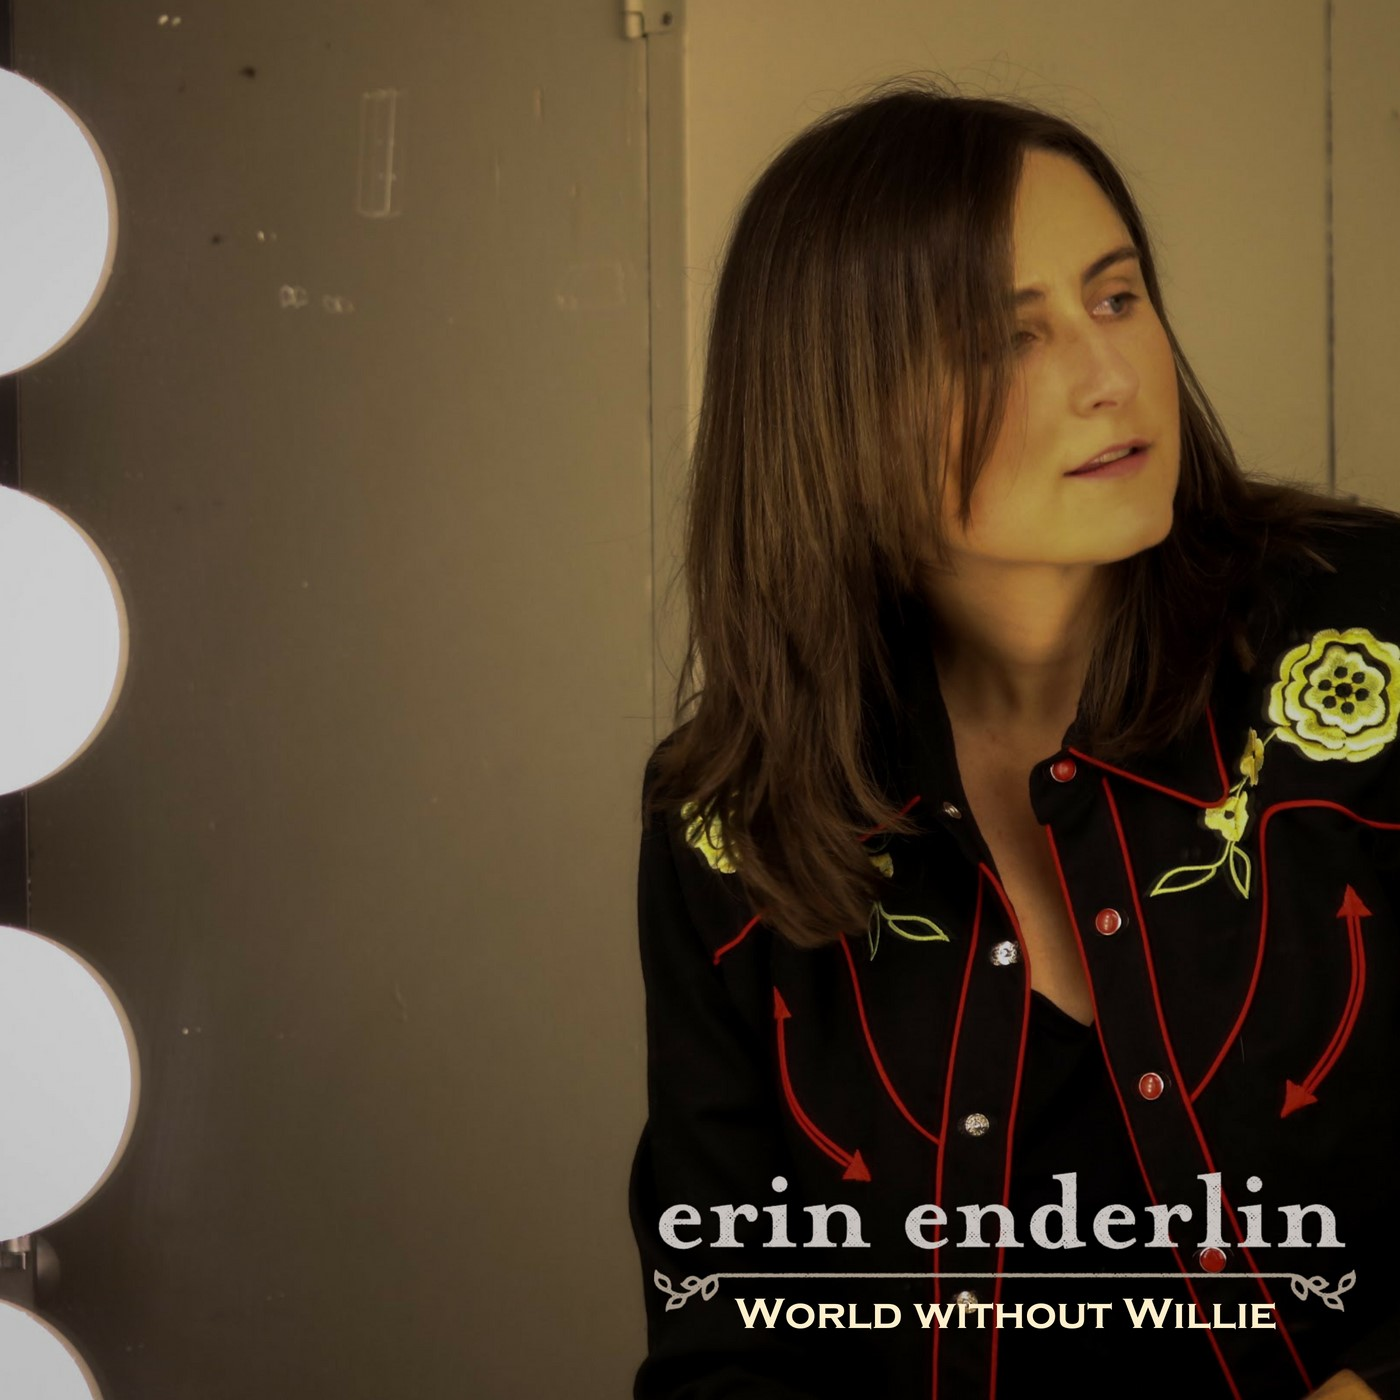 enderlin women When erin enderlin writes a song, more is born than melody and rhyme women and men leap from her mu.